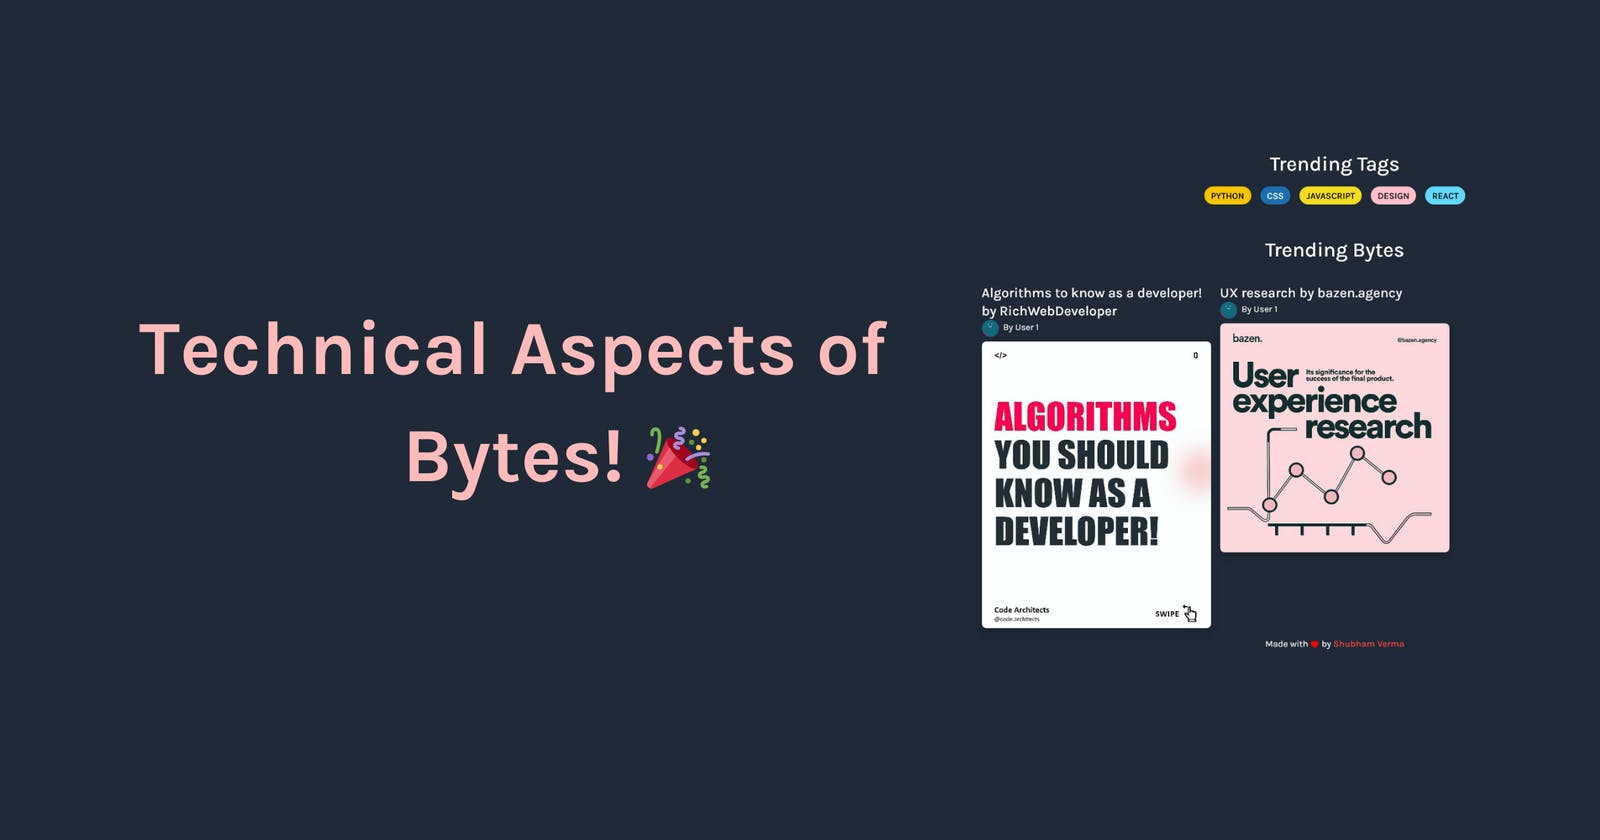 Technical Aspects of Bytes 🎉